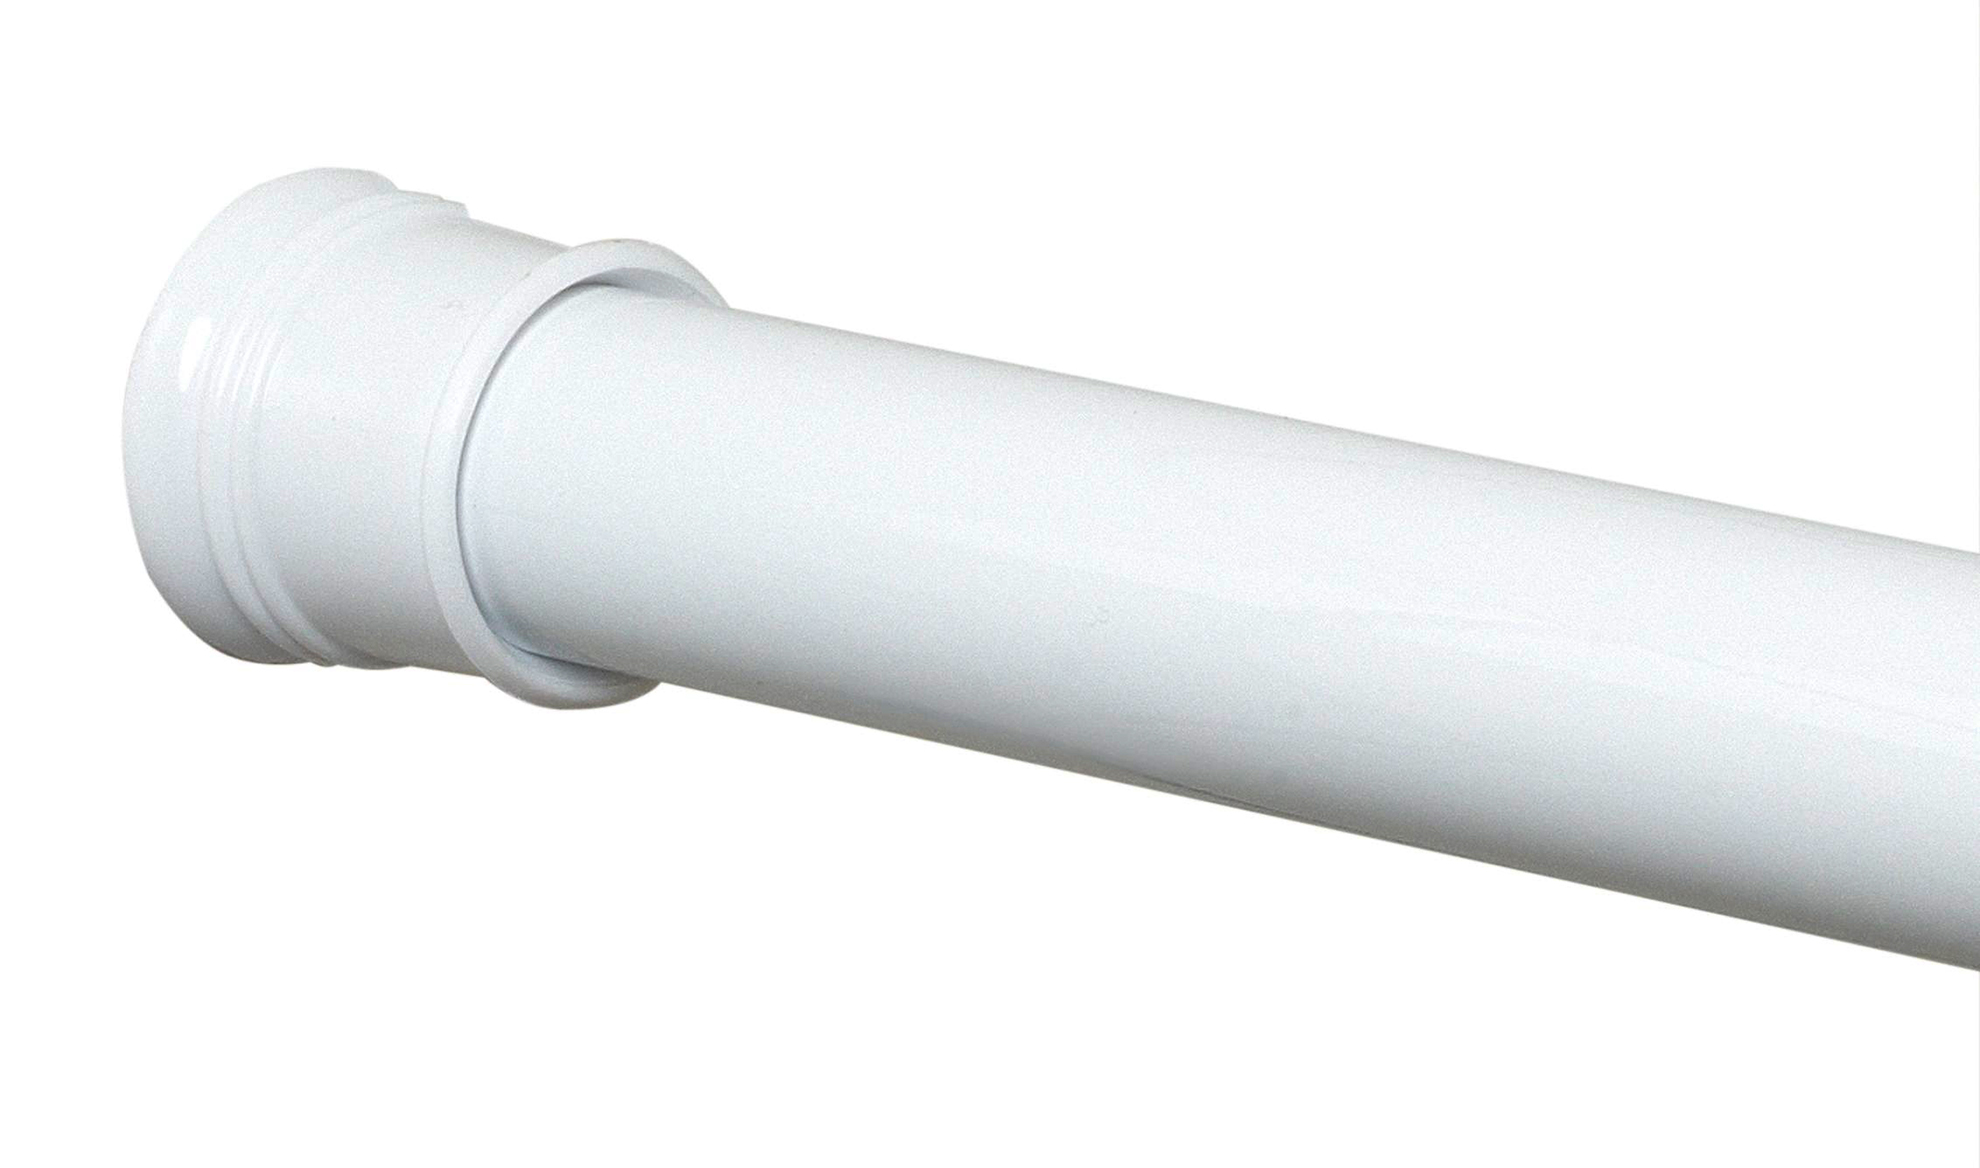 NEW Zenith Twist Tight Shower Curtain Rod White Adjustable to 72 inches